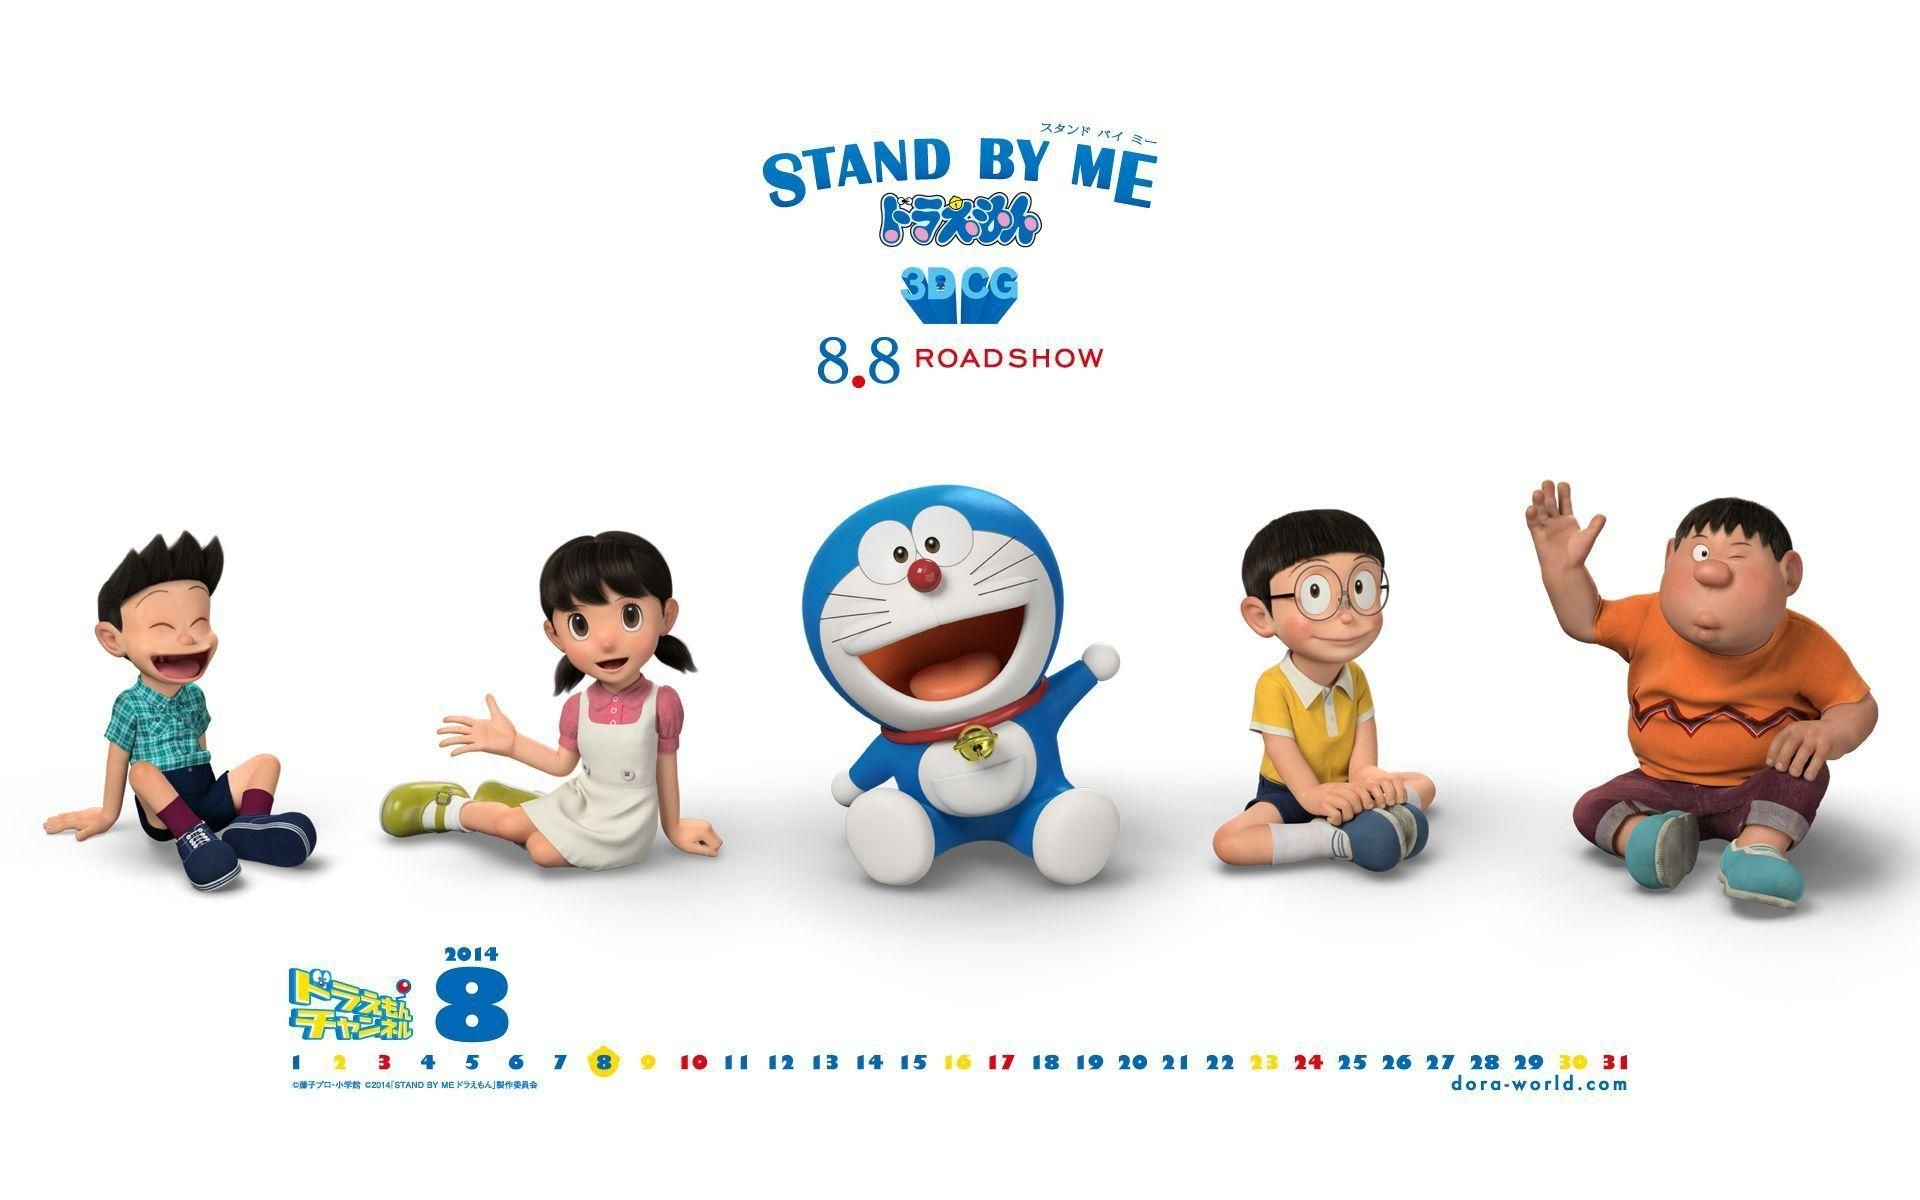 Stand By Me Doraemon Movie Hd Widescreen Wallpaper Doraemon Wallpaper 1080p Wallpaper Hdwallpaper Desk Doraemon Wallpapers Widescreen Wallpaper Doraemon